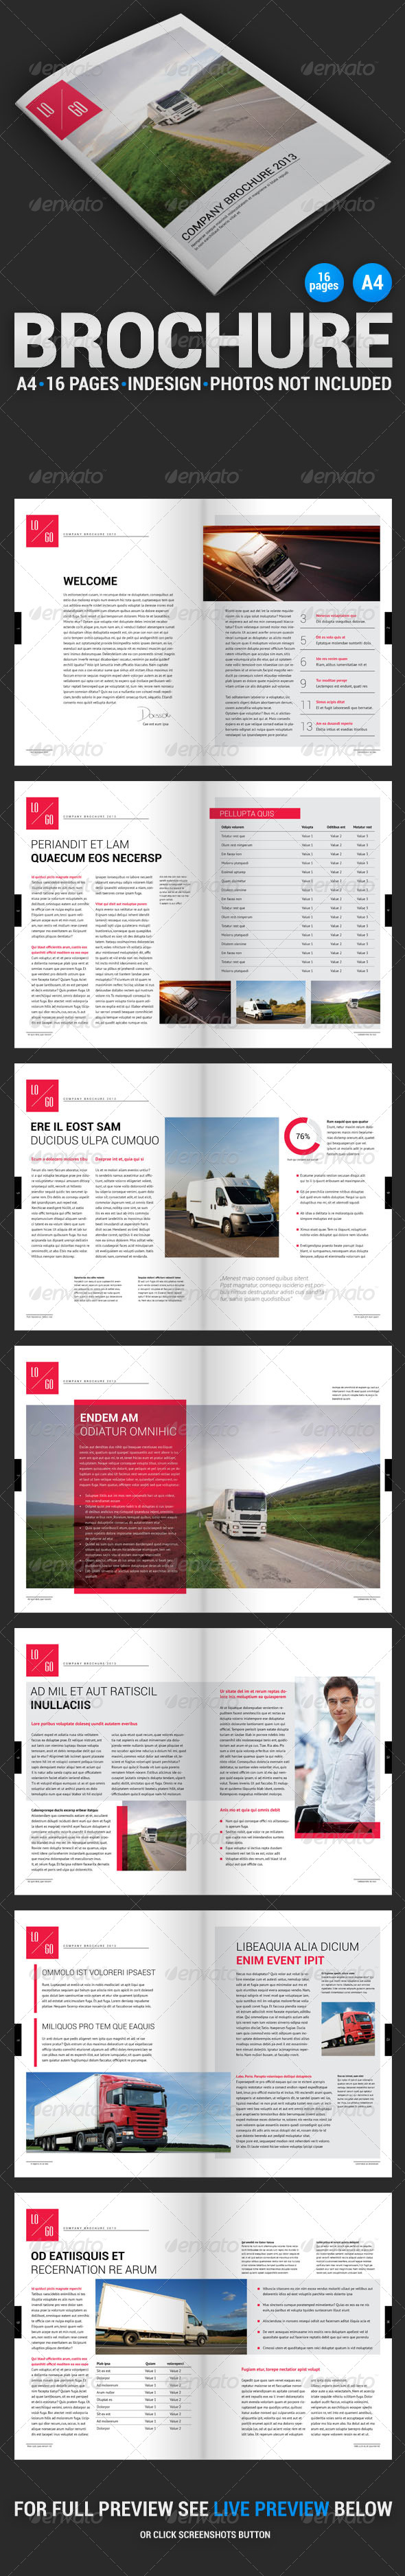 Business Brochure 1 - Corporate Brochures